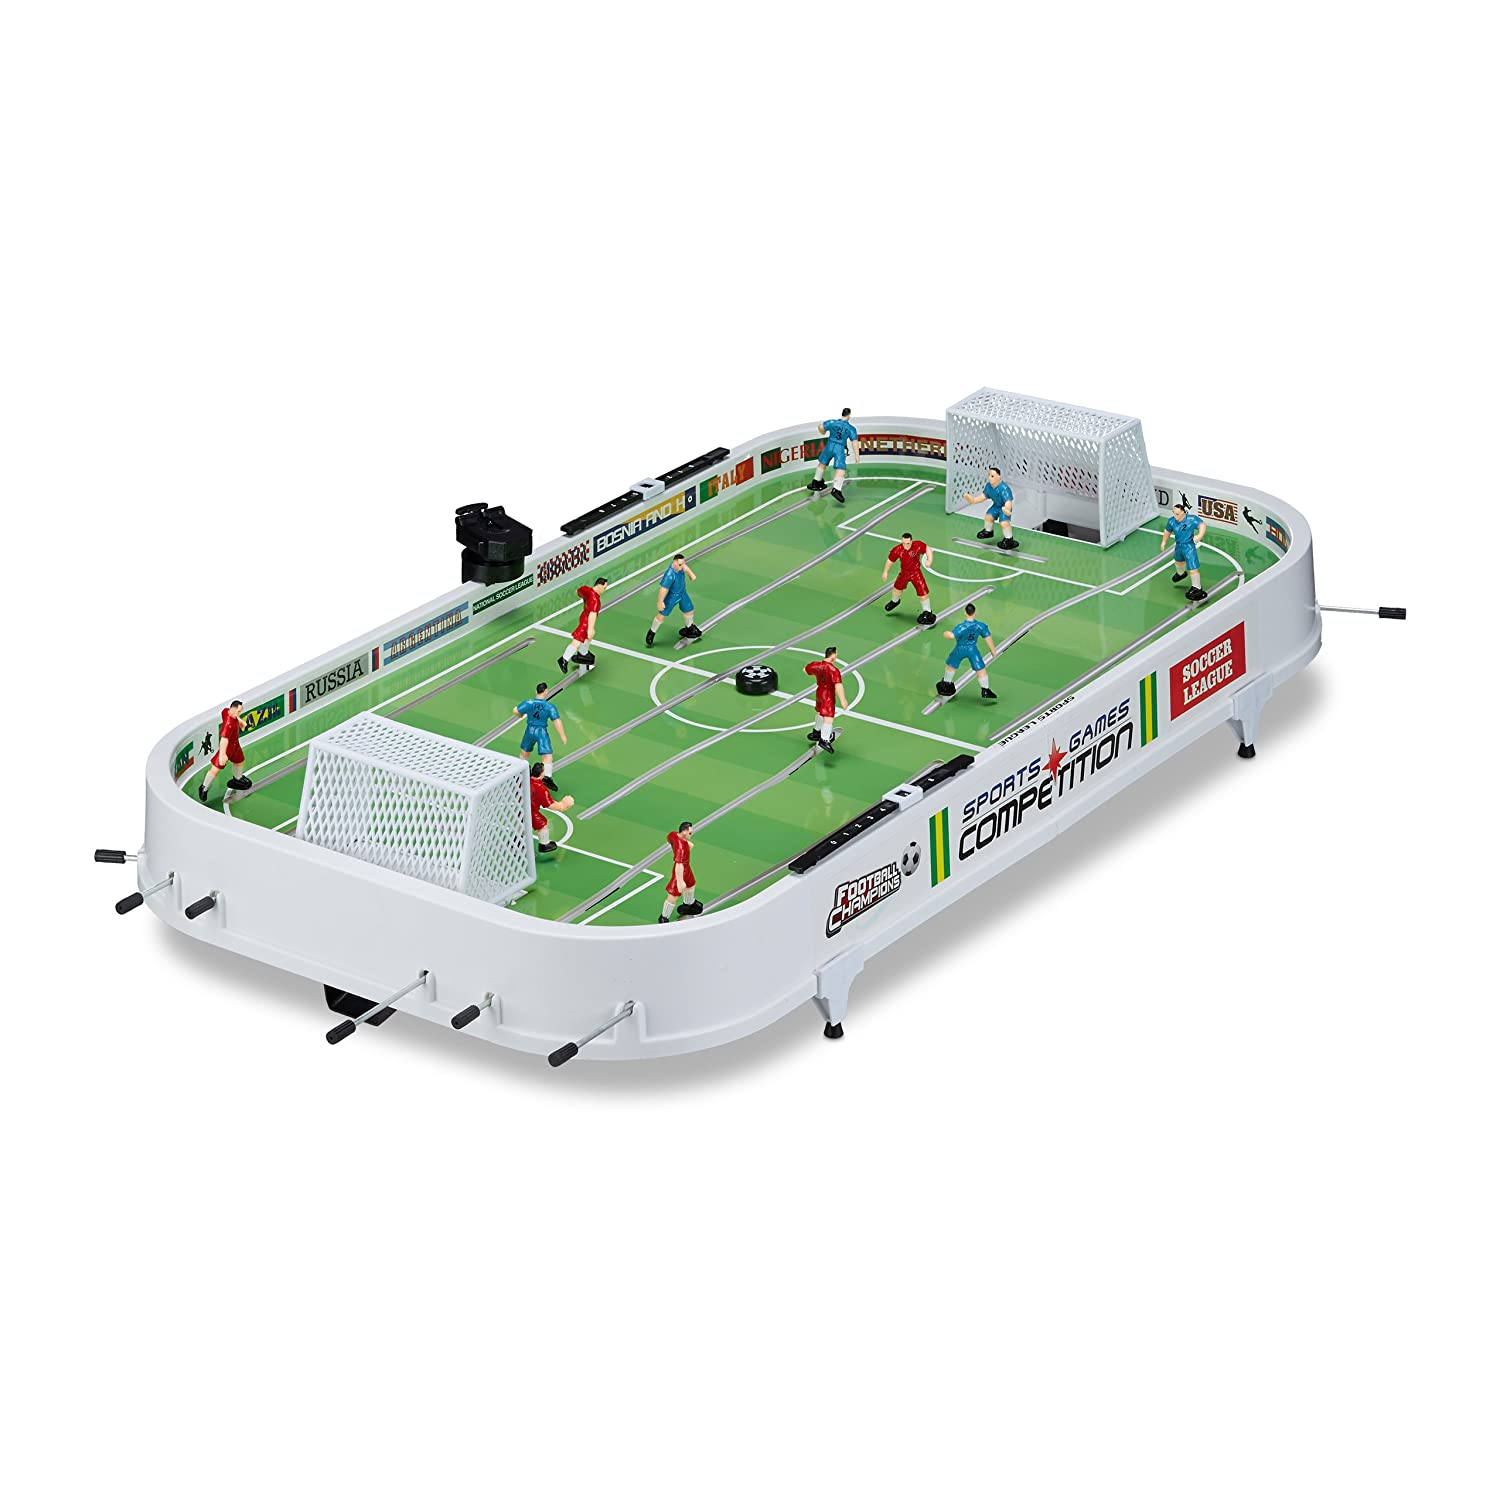 Relaxdays Foosball Tabletop Game, Soccer Set for Adults and Kids, XL Football Table, W x D: 96 x 51 cm, White-Green 10021754